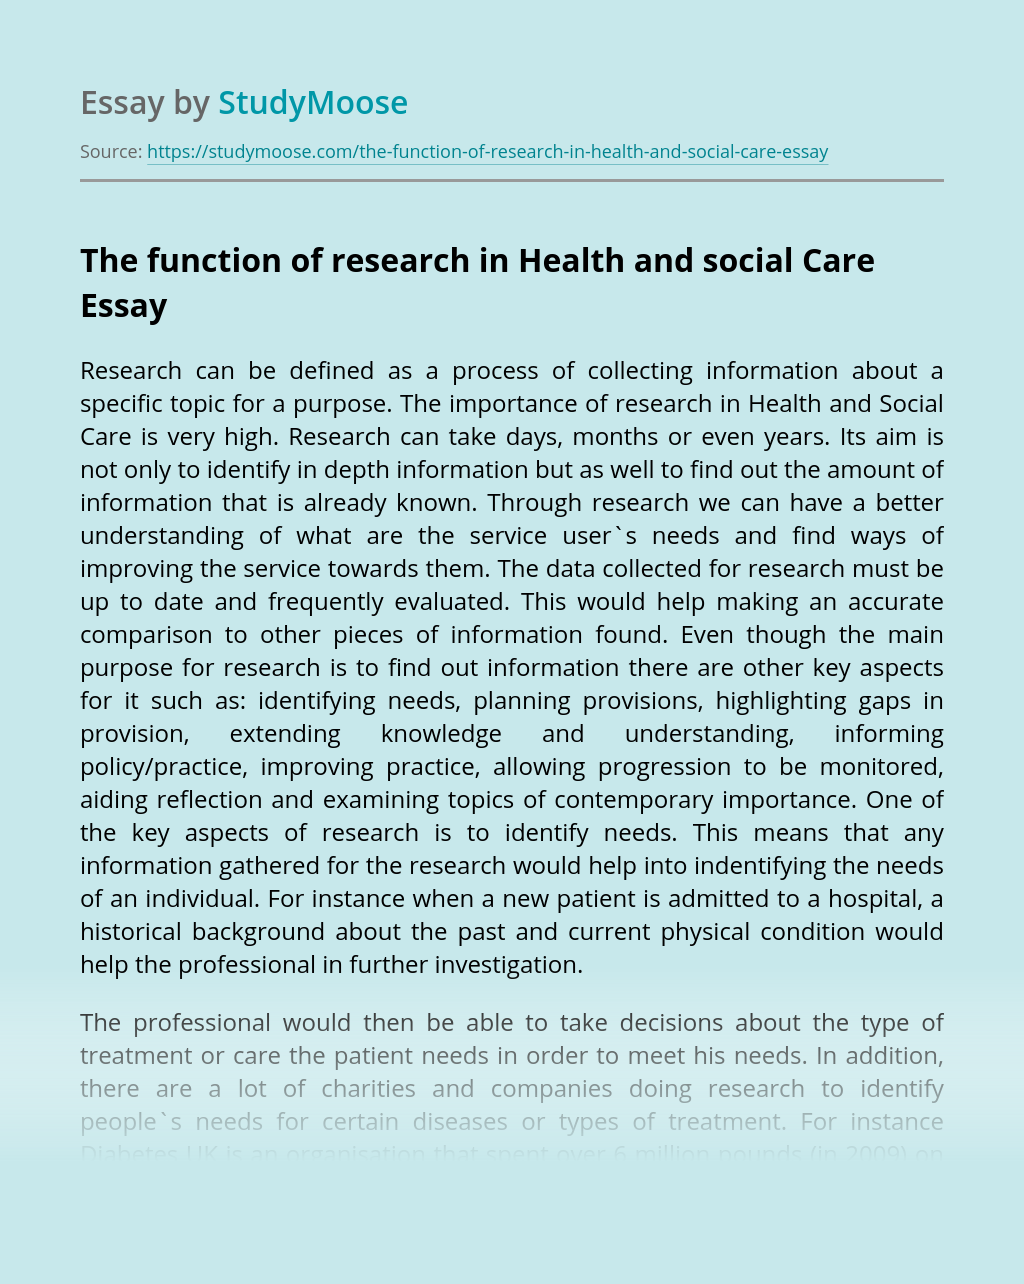 The function of research in Health and social Care